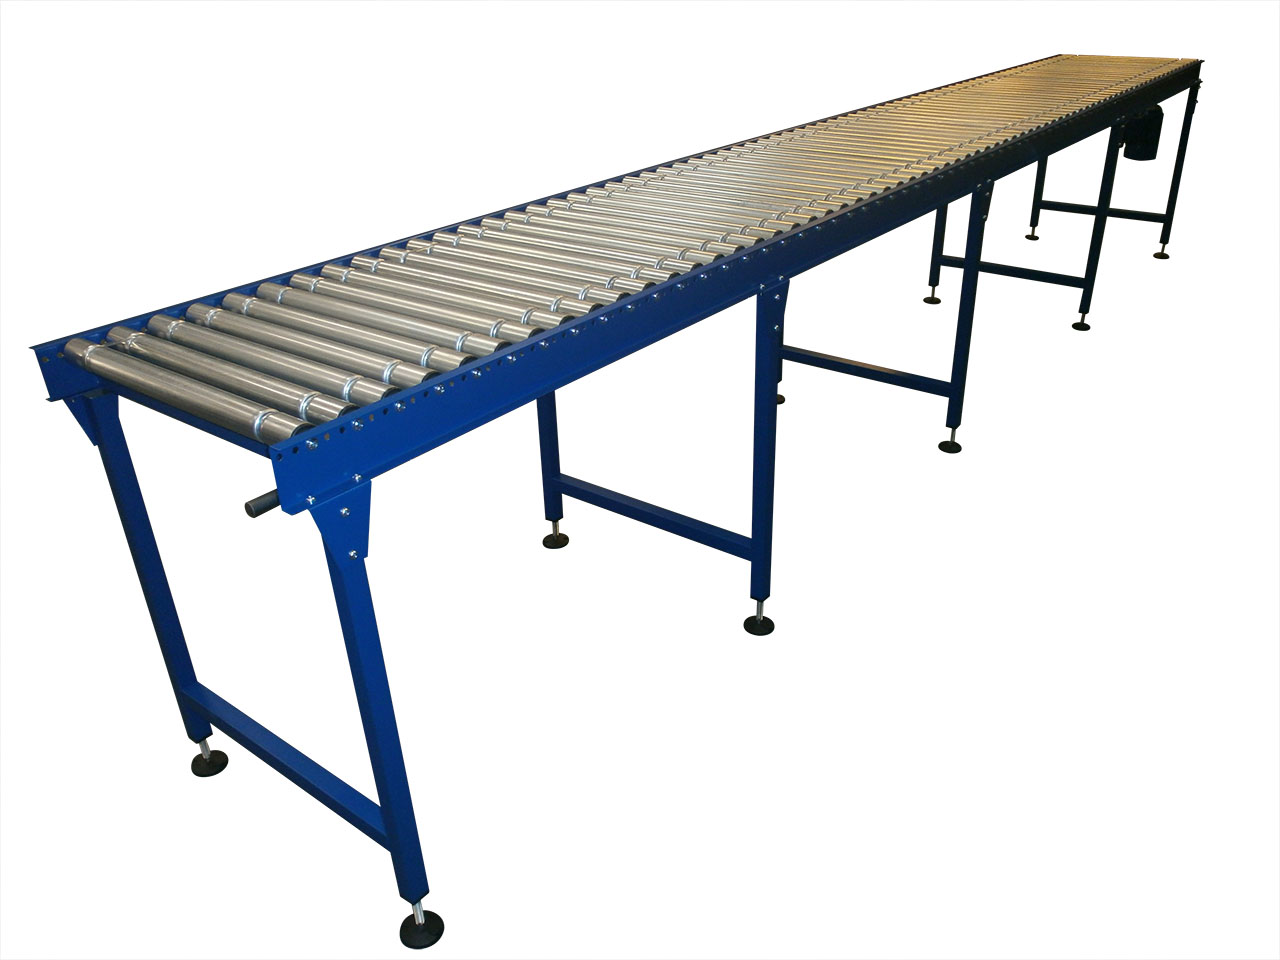 24V Driven roller conveyor - fixed drive or Zoned